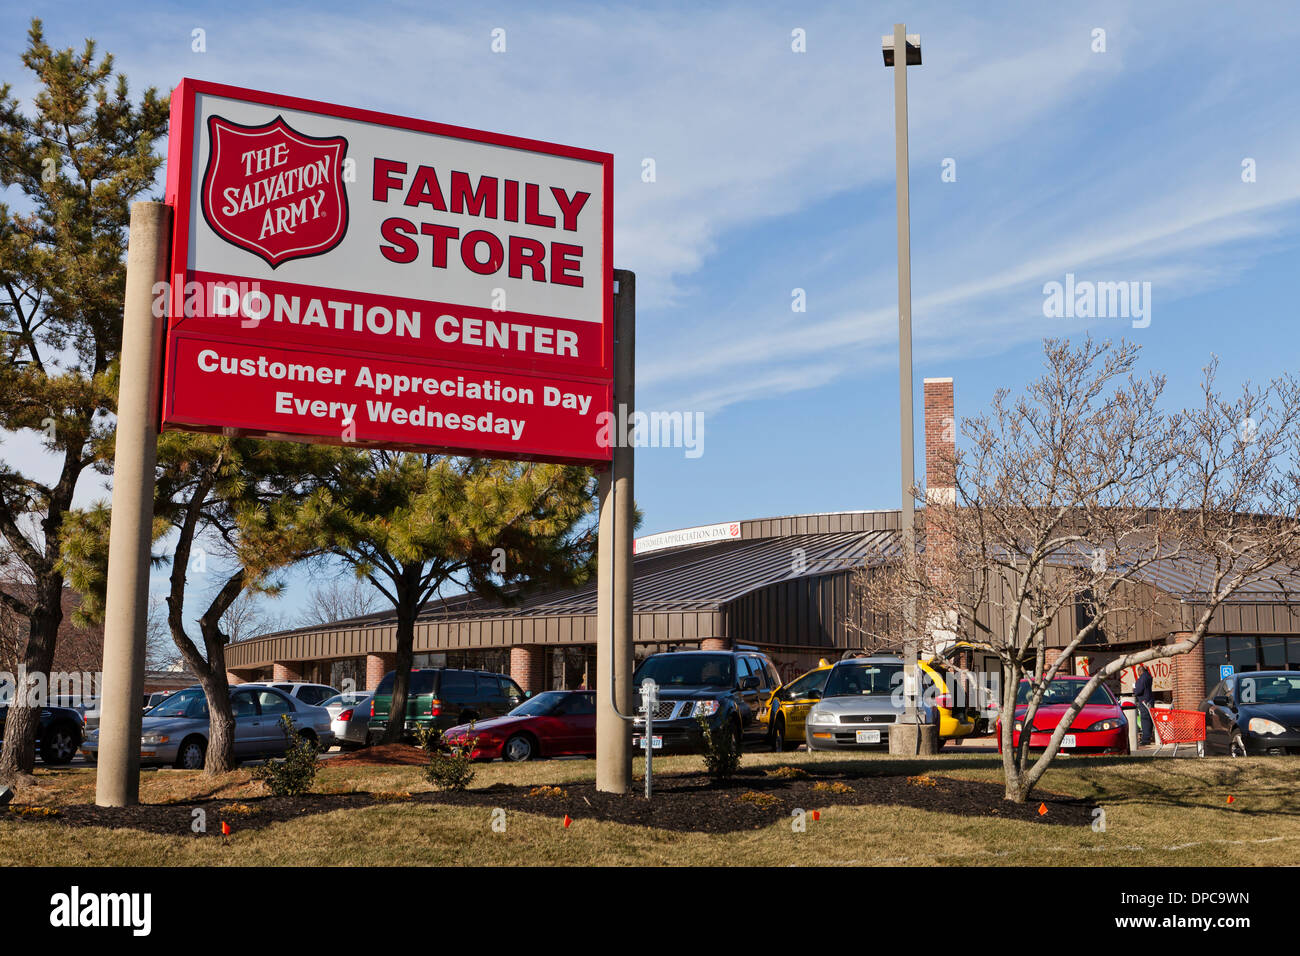 cb7234ad The Salvation Army family store and donation center sign - Virginia USA -  Stock Image